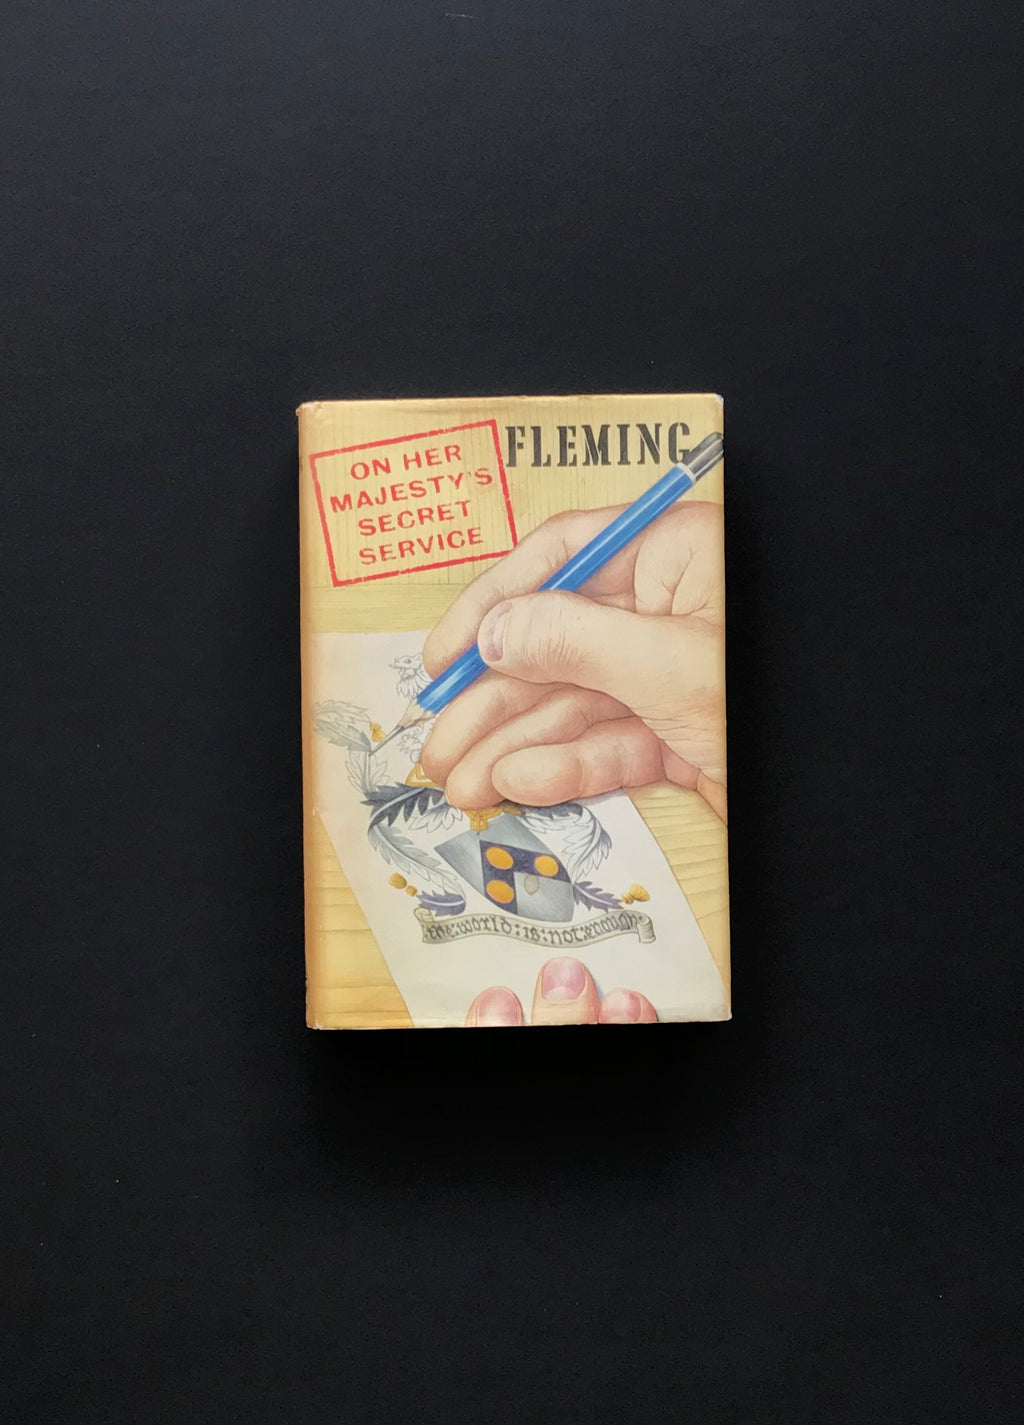 On Her Majesty's Secret Service (1969) - A First Edition Book by Ian Fleming, Signed & inscribed by George Lazenby SOLD